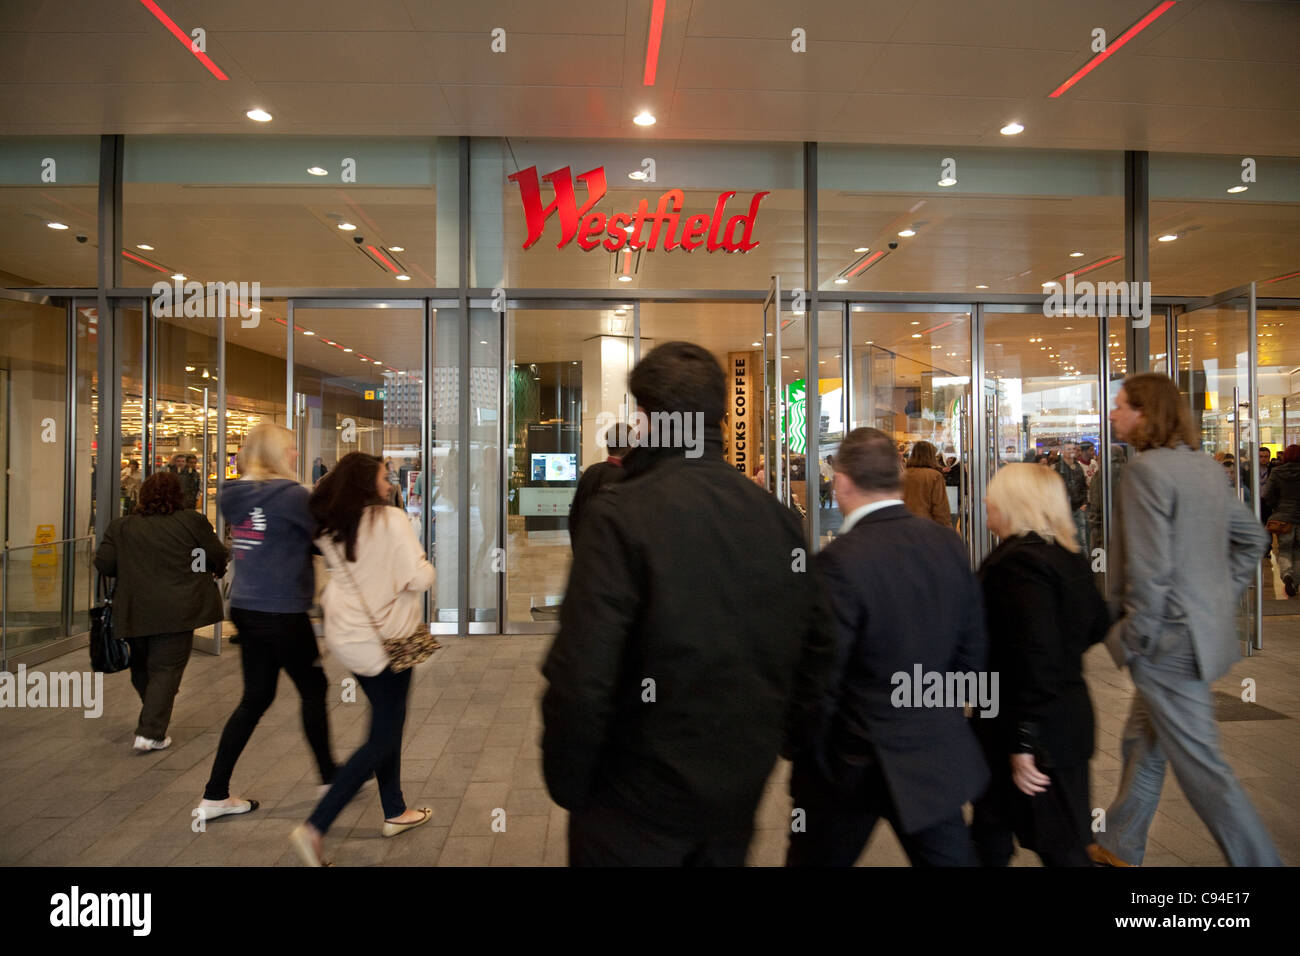 Shoppers at entrance to Westfield shopping centre, Stratford, London UK - Stock Image